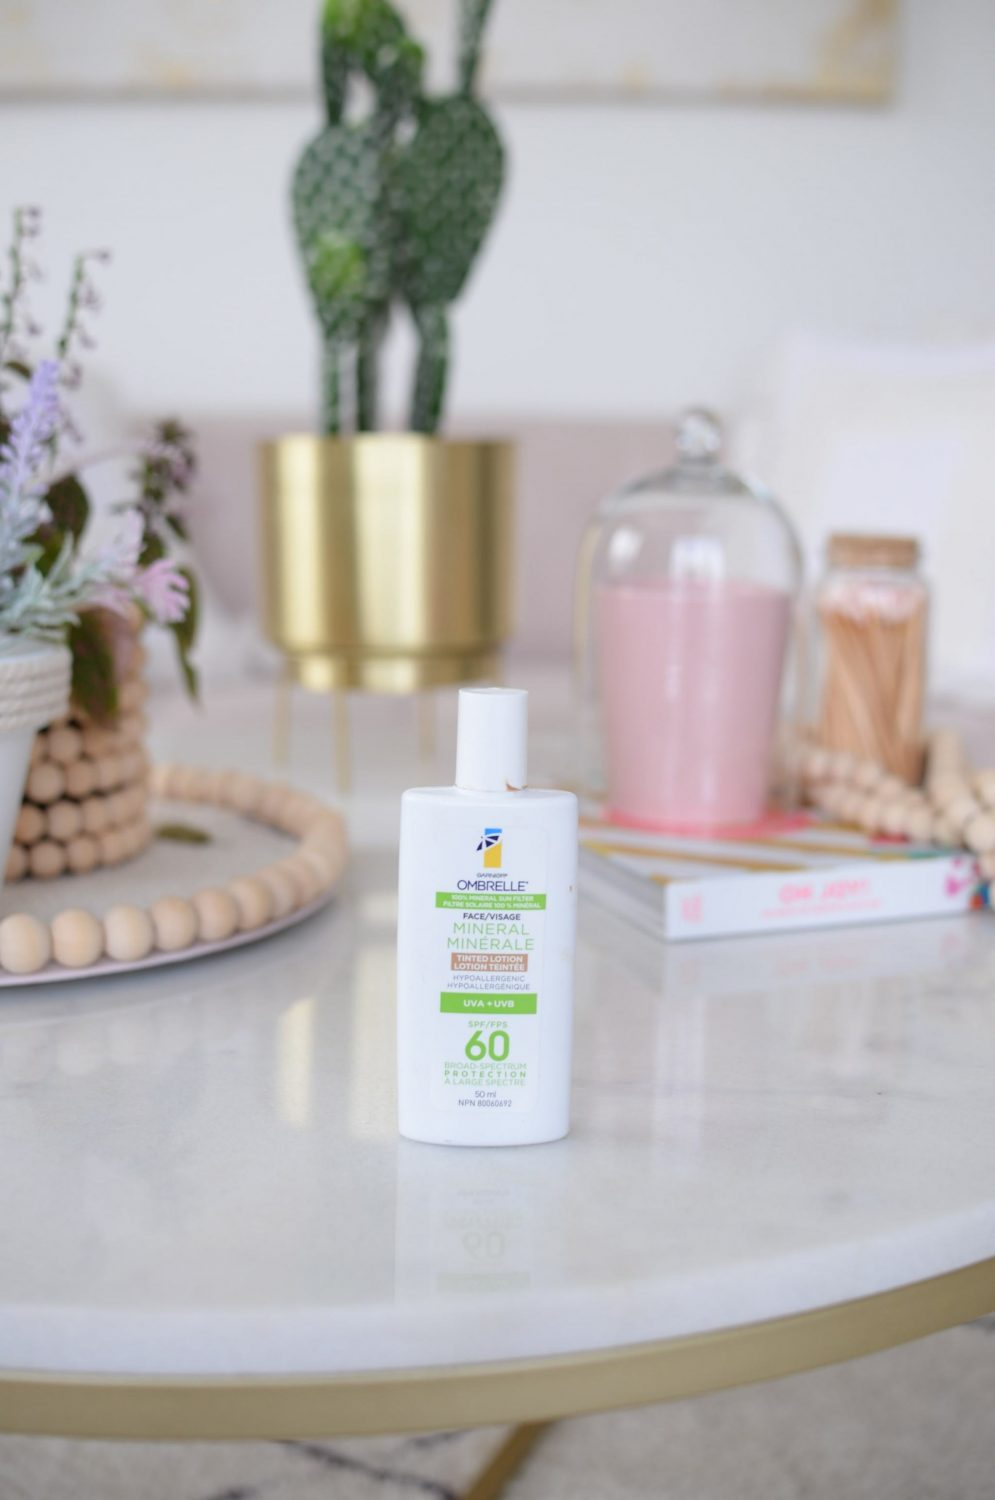 Garnier Ombrelle Mineral Tinted Lotion SPF 60 Face Lotion